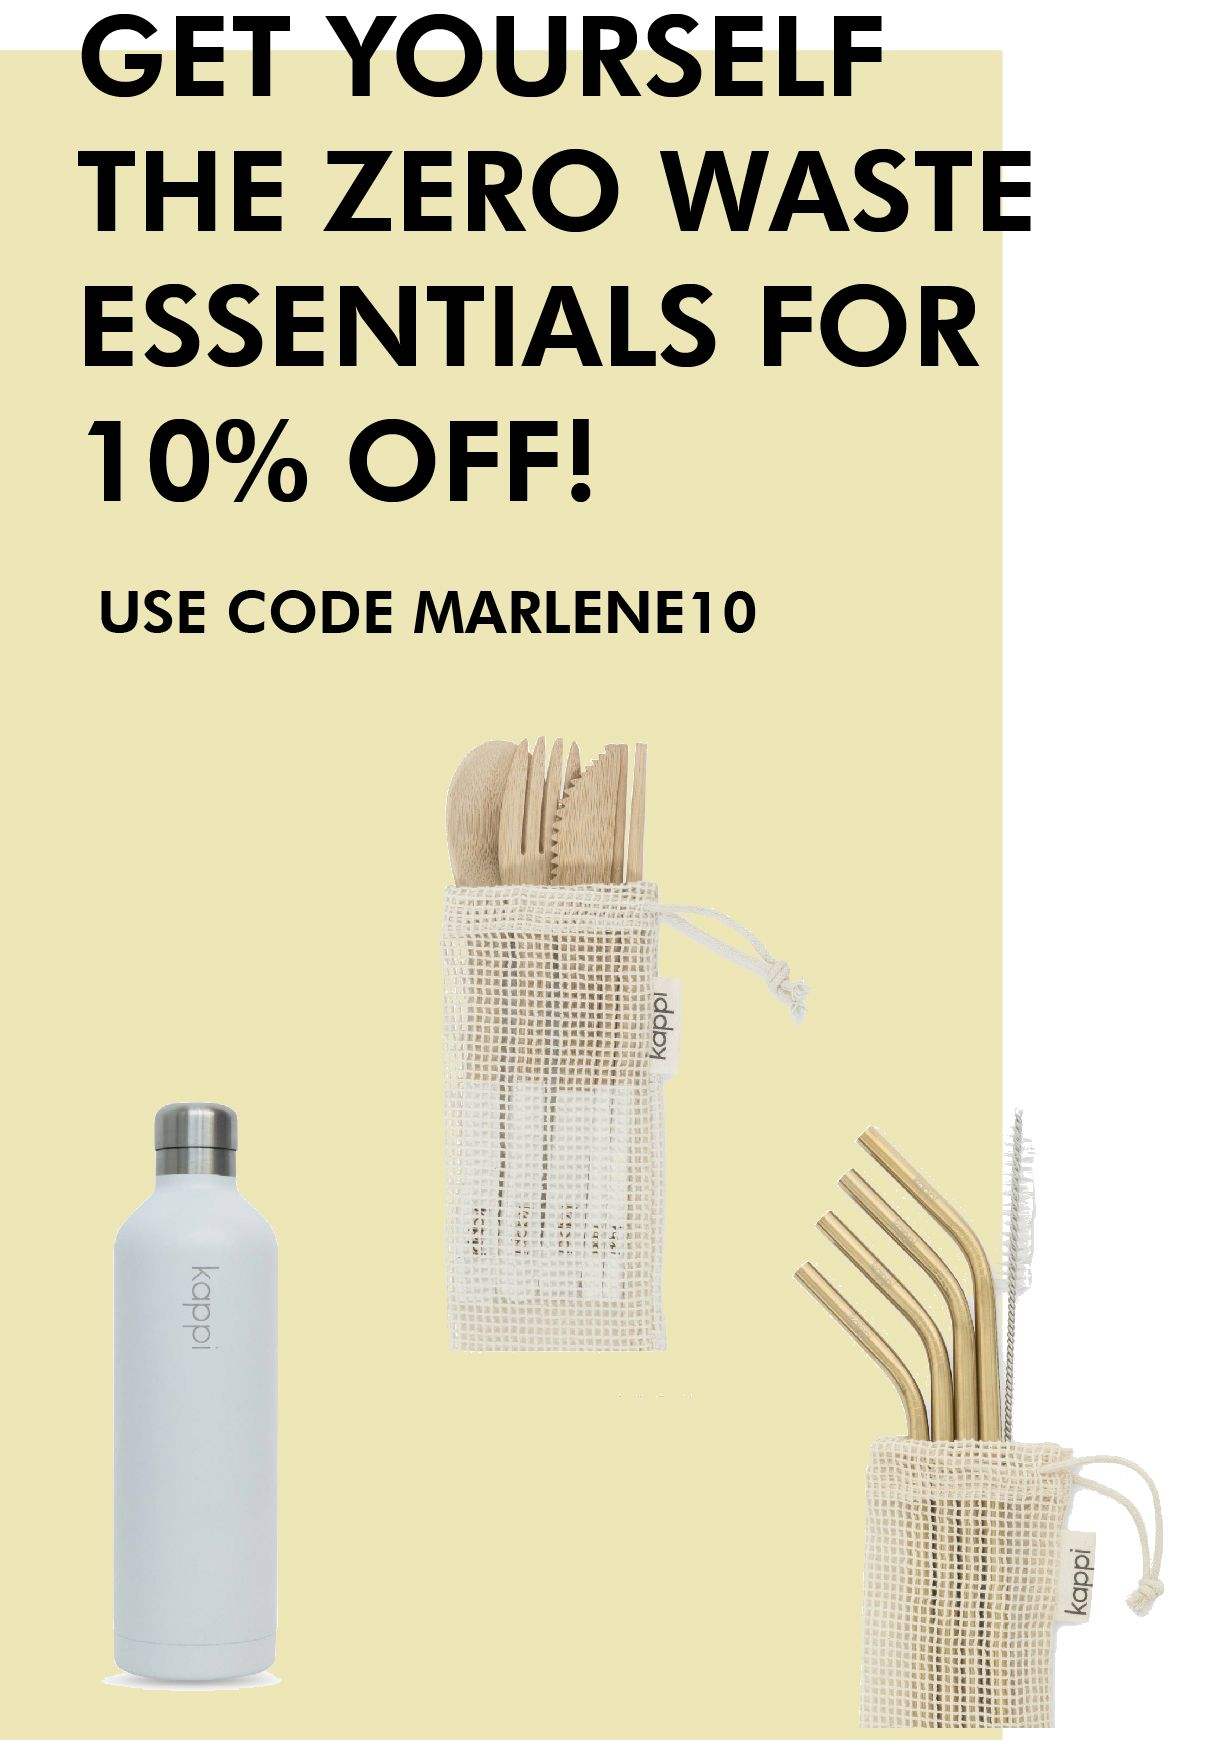 Check out these beautiful zero waste essentials by KAPPI